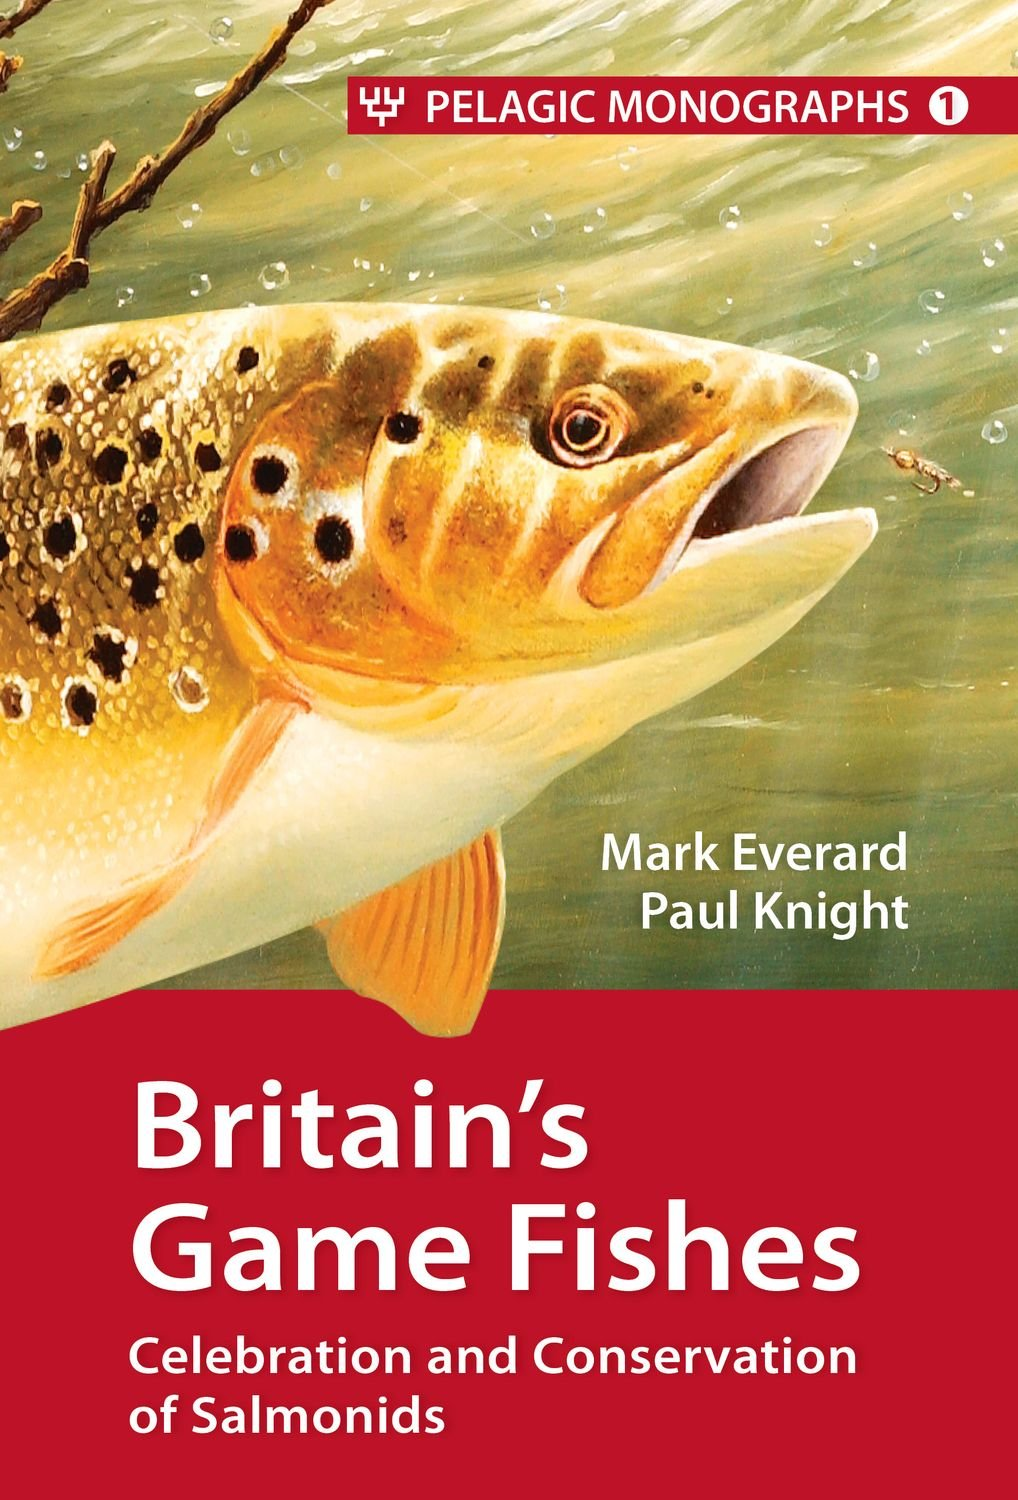 Image OfBritains Game Fishes: Celebration And Conservation Of Salmonids (Pelagic Monographs Book 1) (English Edition)